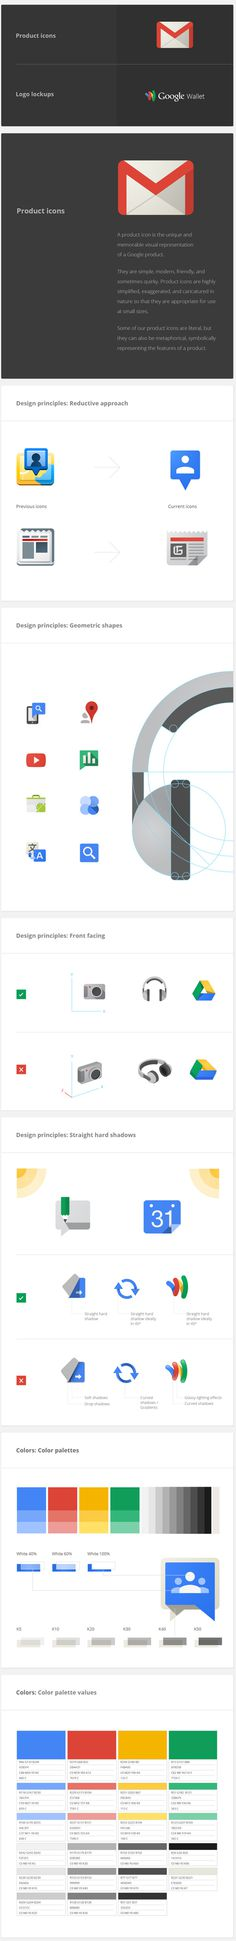 Google Visual Assets Guidelines Part 1 on Behance #google #brand guidelines #visual assets